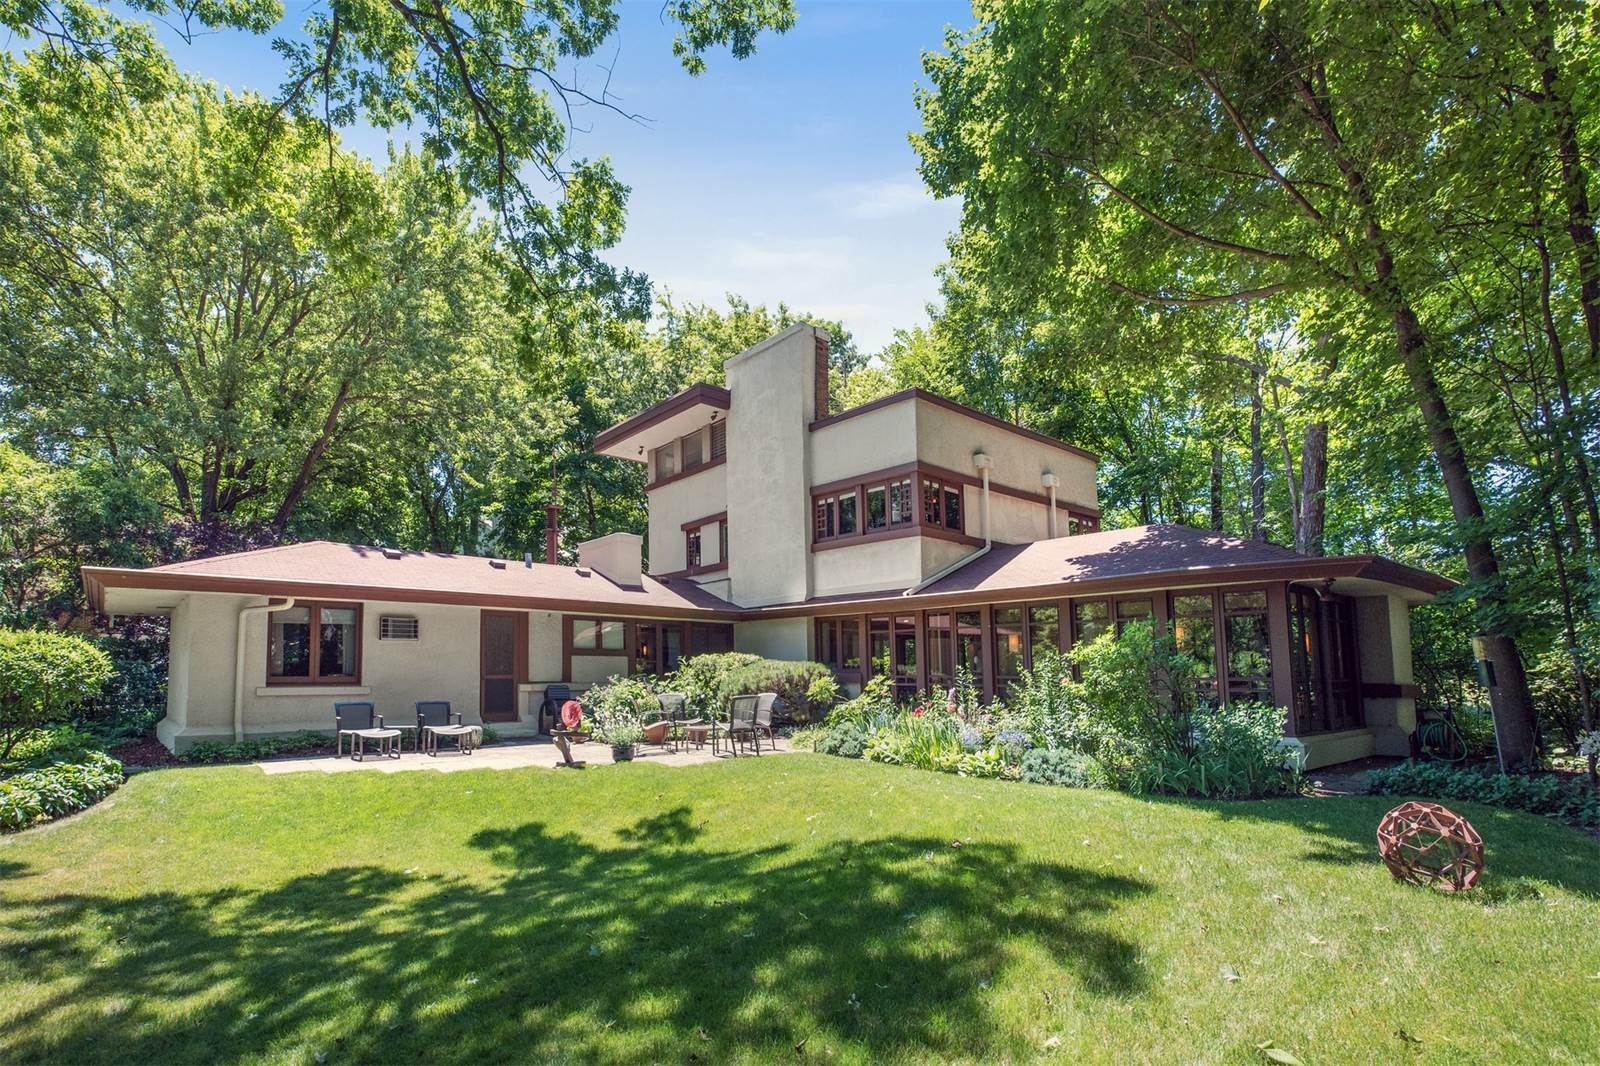 Frank lloyd wright homes for sale around chicago curbed for Frank lloyd wright houses